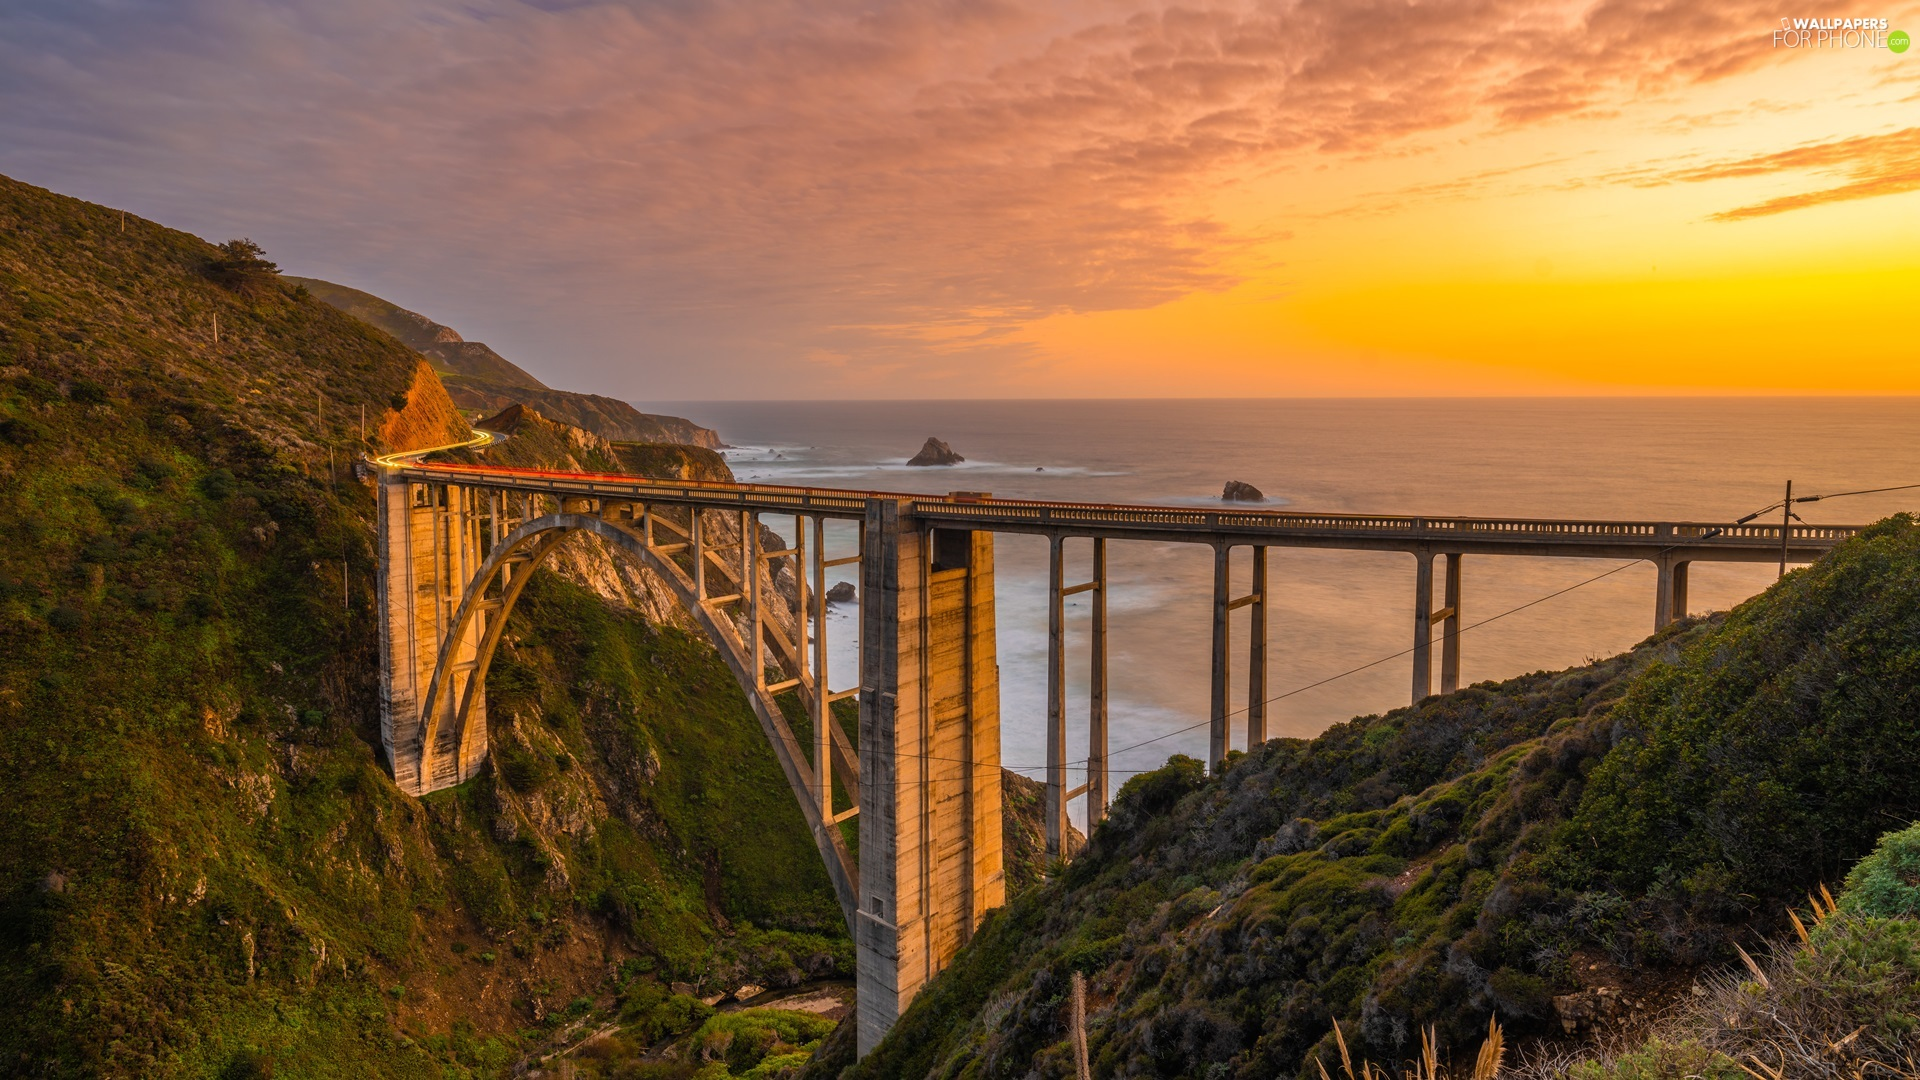 Coast, Big Sur Region, The United States, Great Sunsets, California, Bixby Creek Bridge, sea, clouds